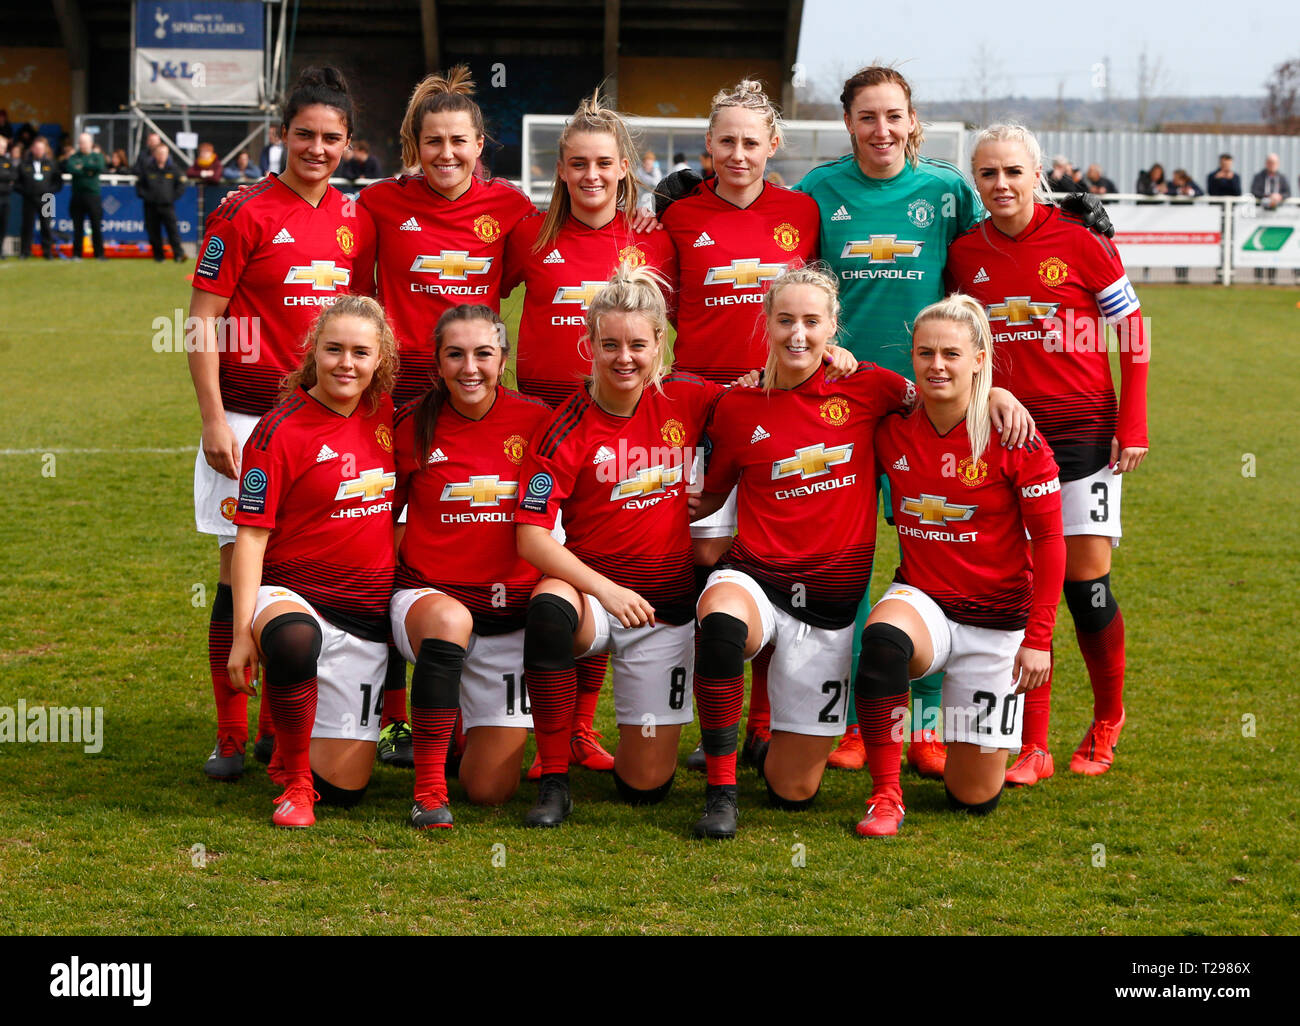 Manchester United Fc Team High Resolution Stock Photography And Images Alamy